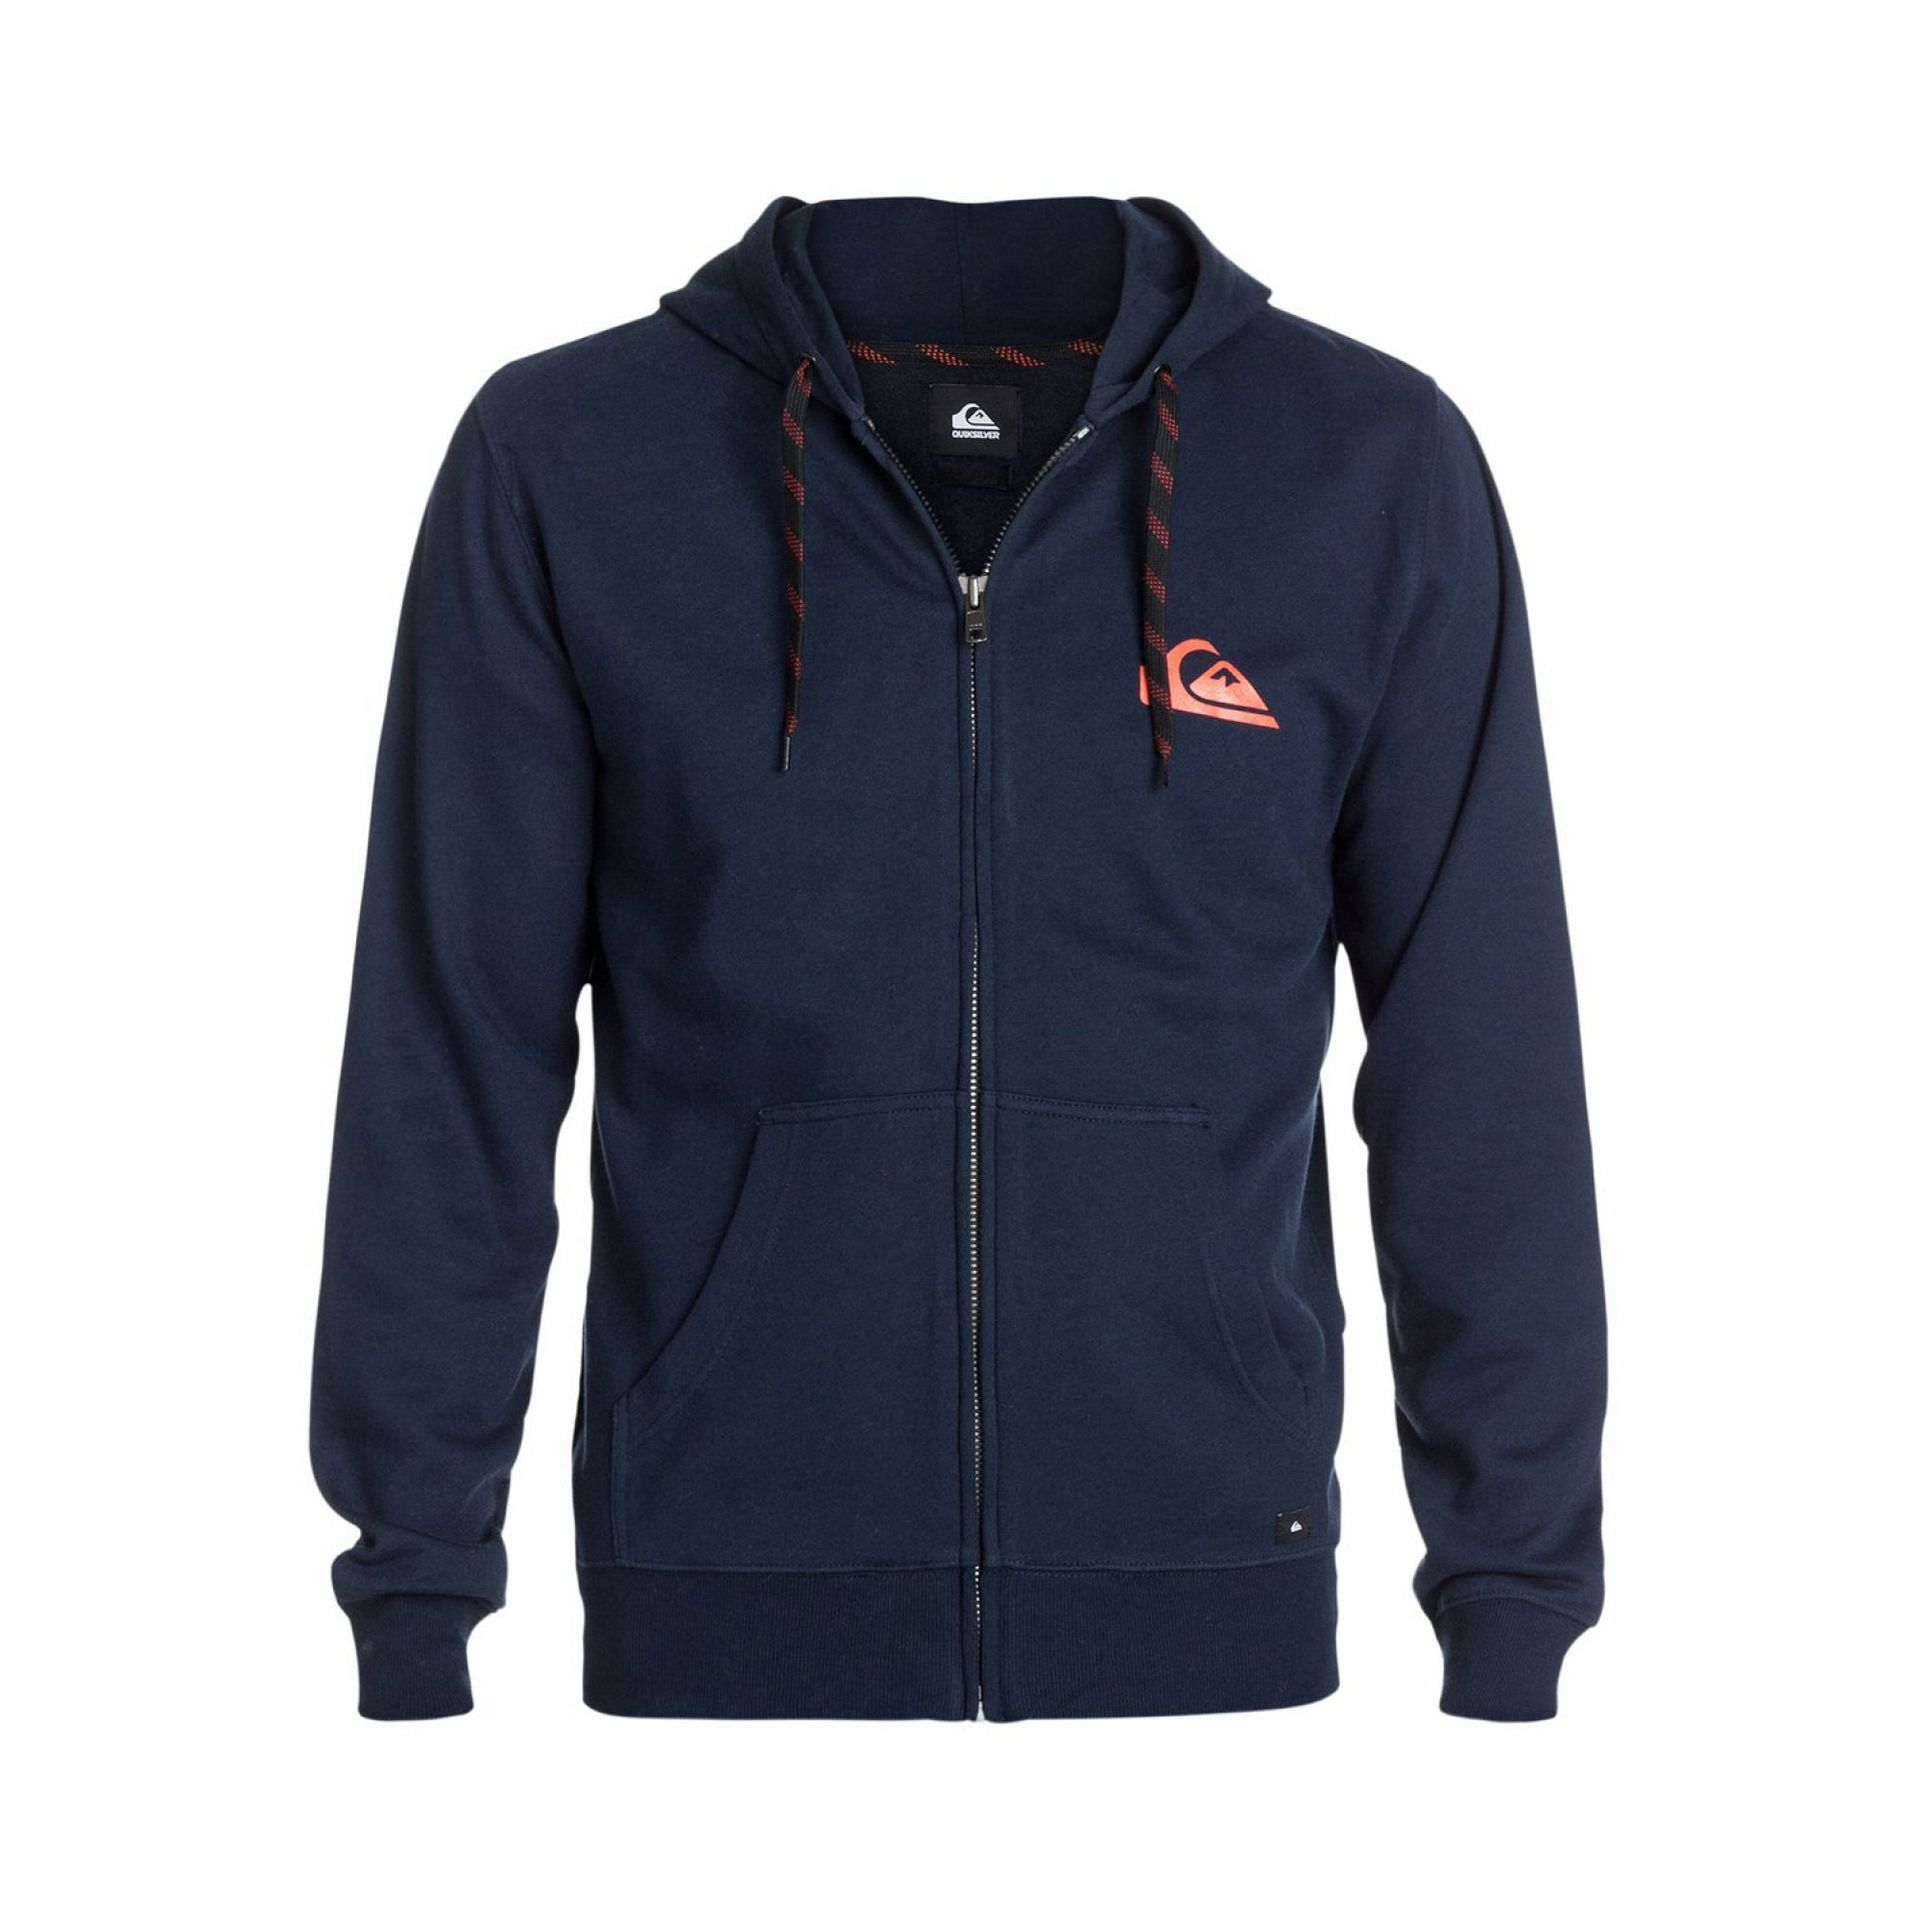 BLUZA QUIKSILVER EVERYDAY ZIP NAVY BLAZE